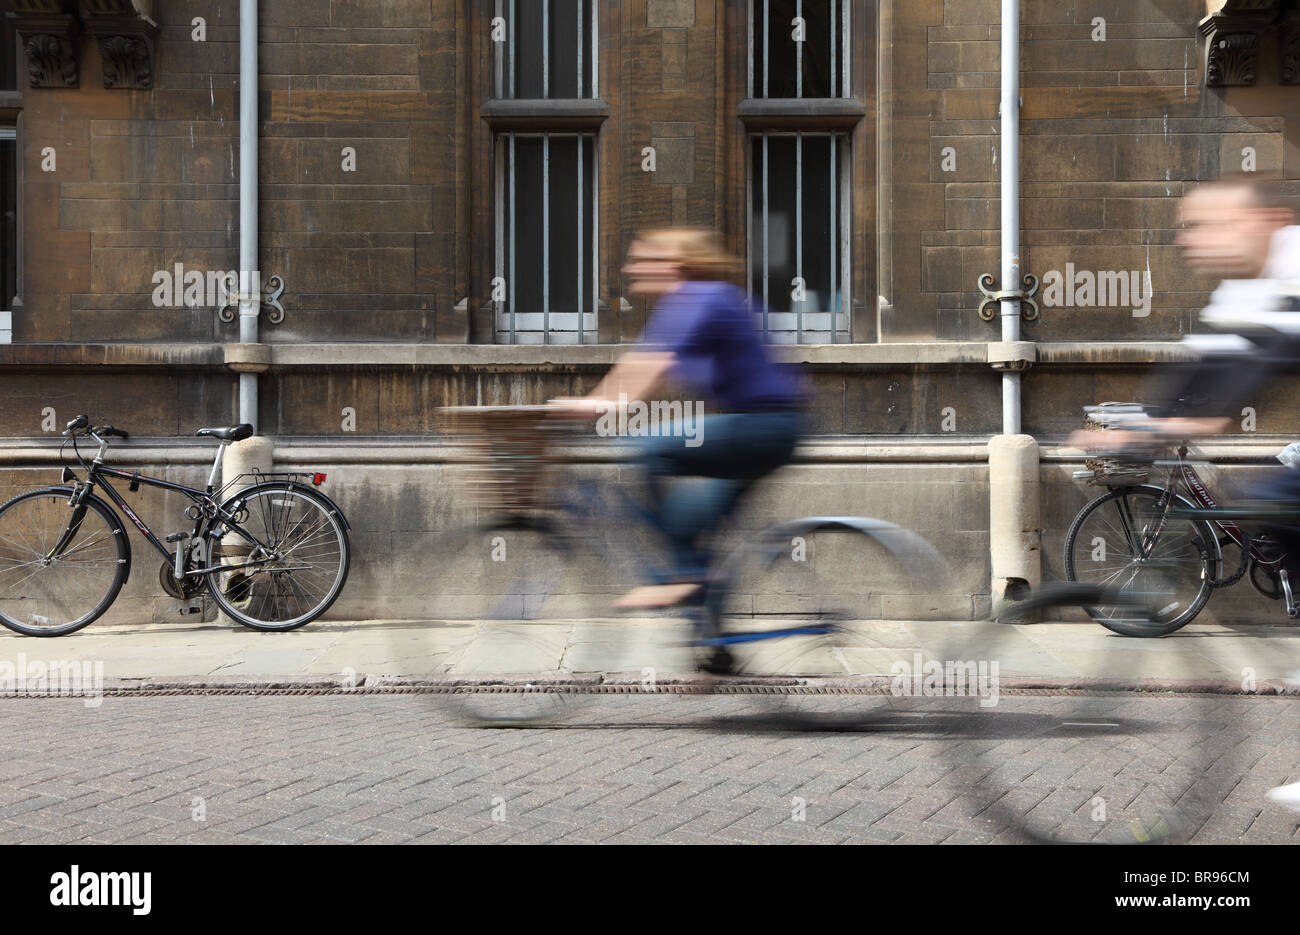 May 2017 Challenge Transport Let S Talk About Pics Alamy